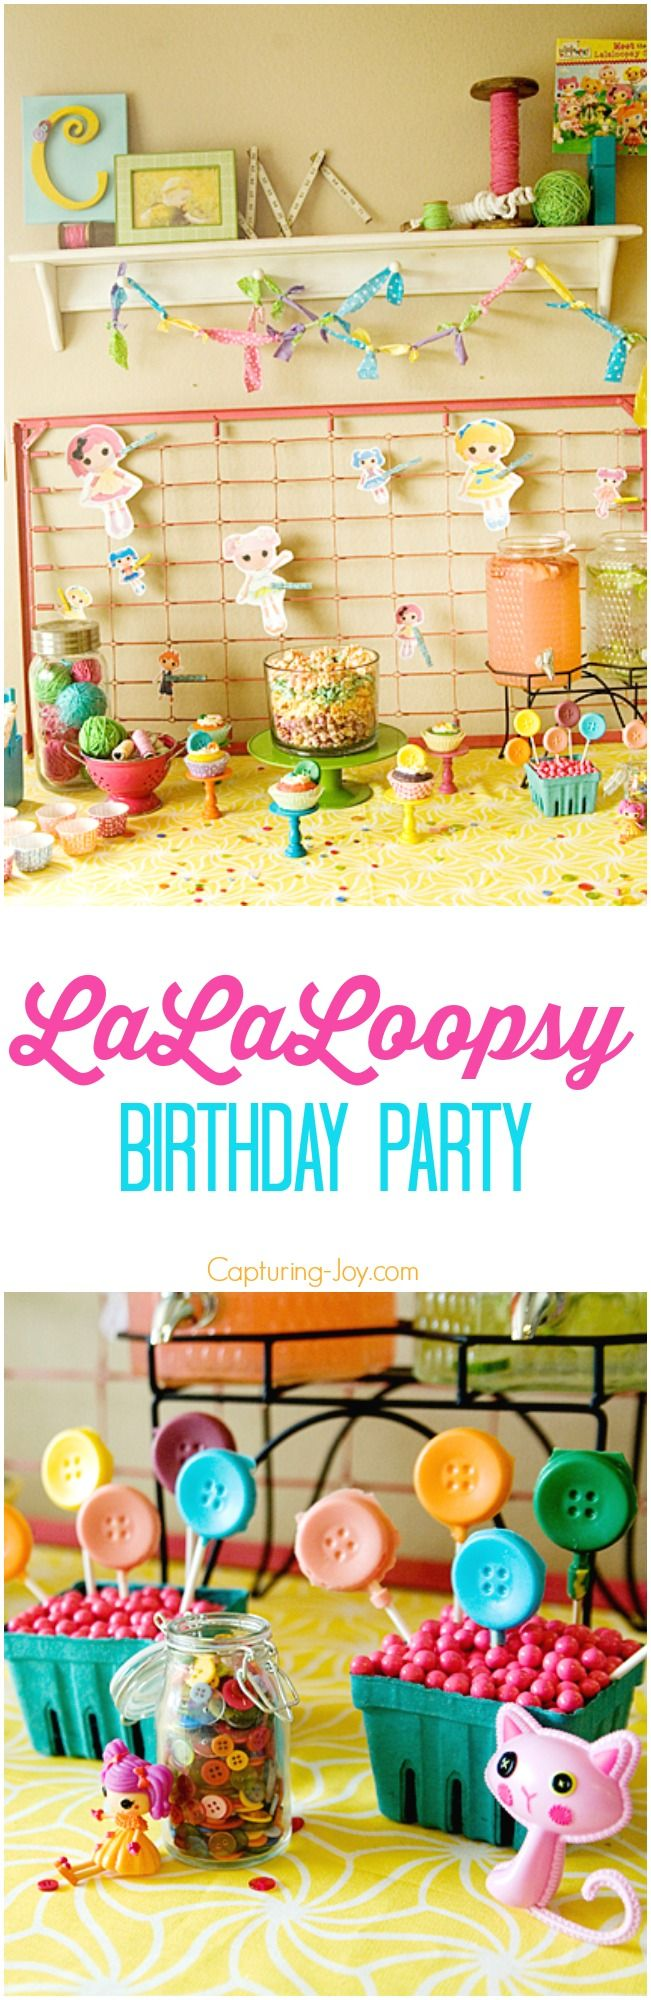 LaLaLoopsy Birthday Party Ideas!  From decor to food we've got you covered! Capturing-Joy.com